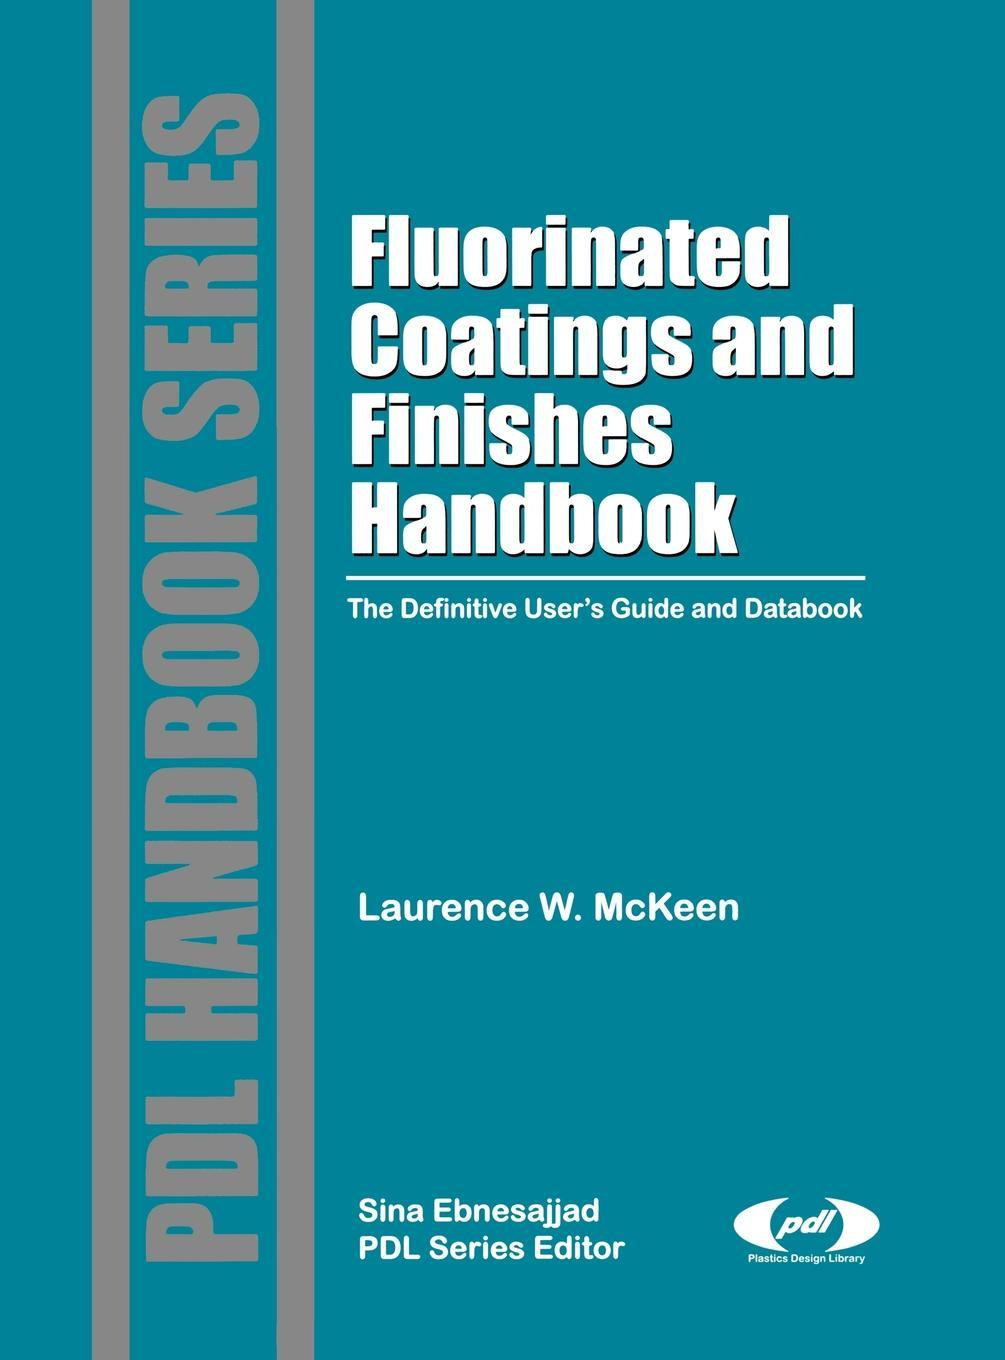 Fluorinated Coatings and Finishes Handbook: The Definitive User's Guide and Databook